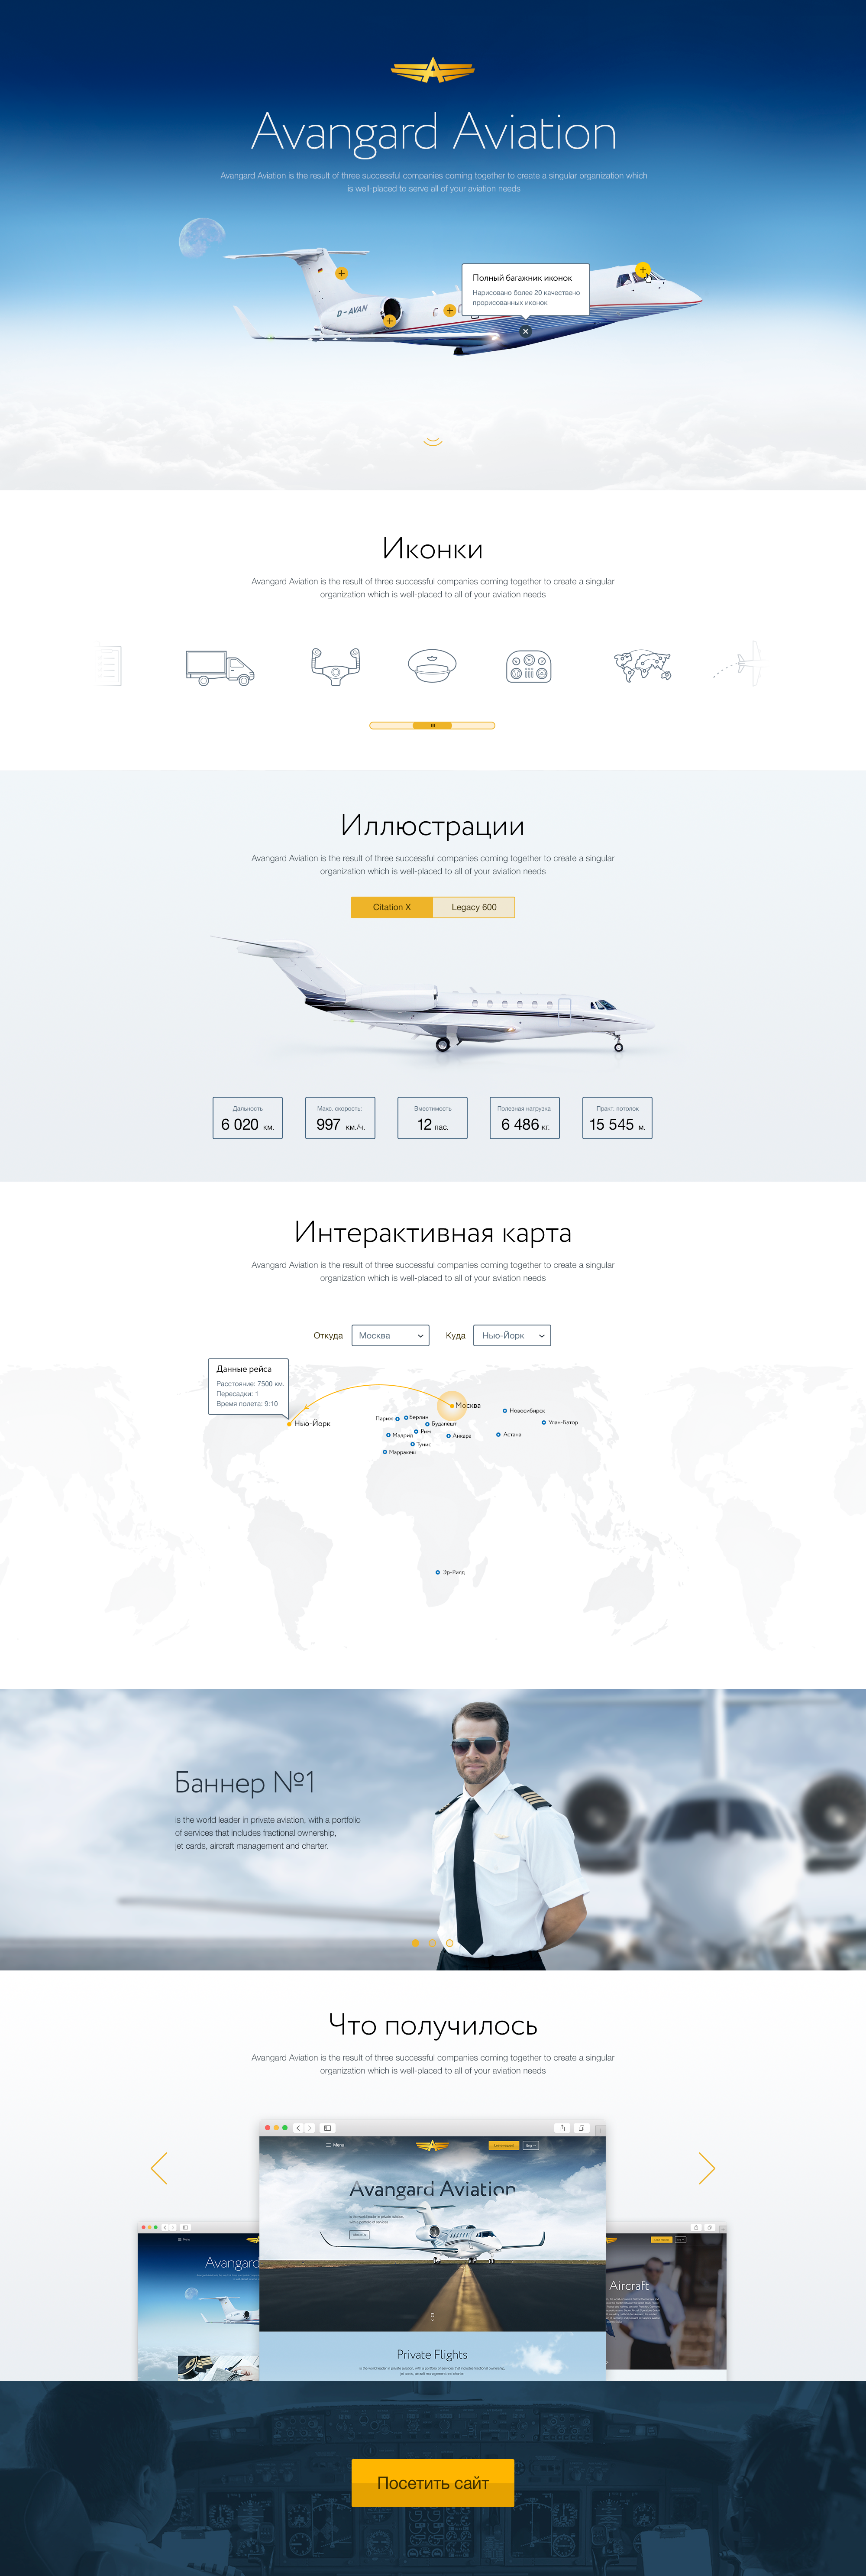 Avangard Aviation